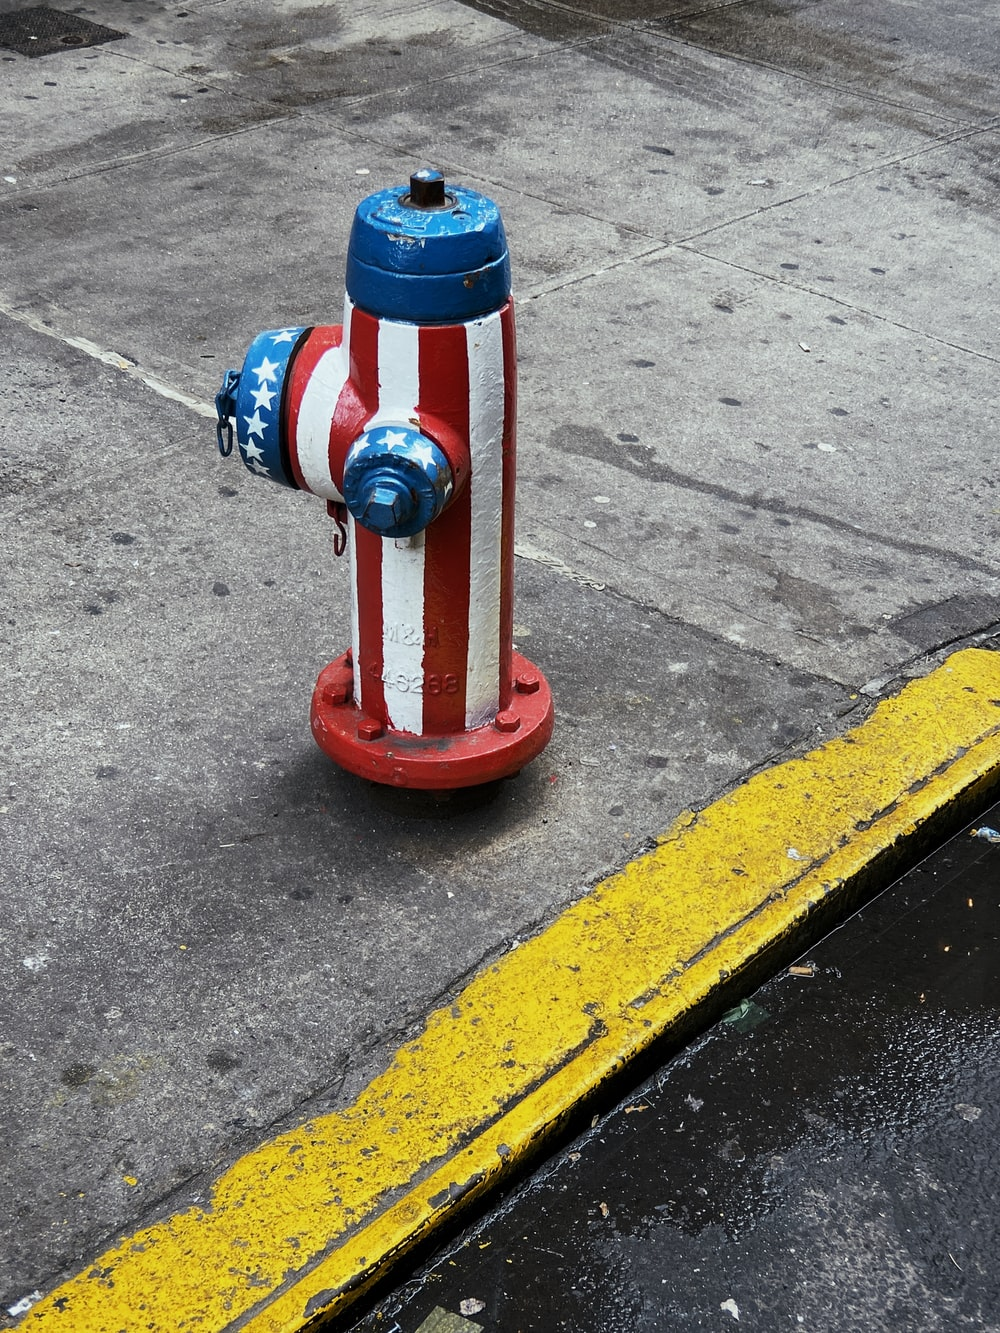 red, white, and blue fire hydrant